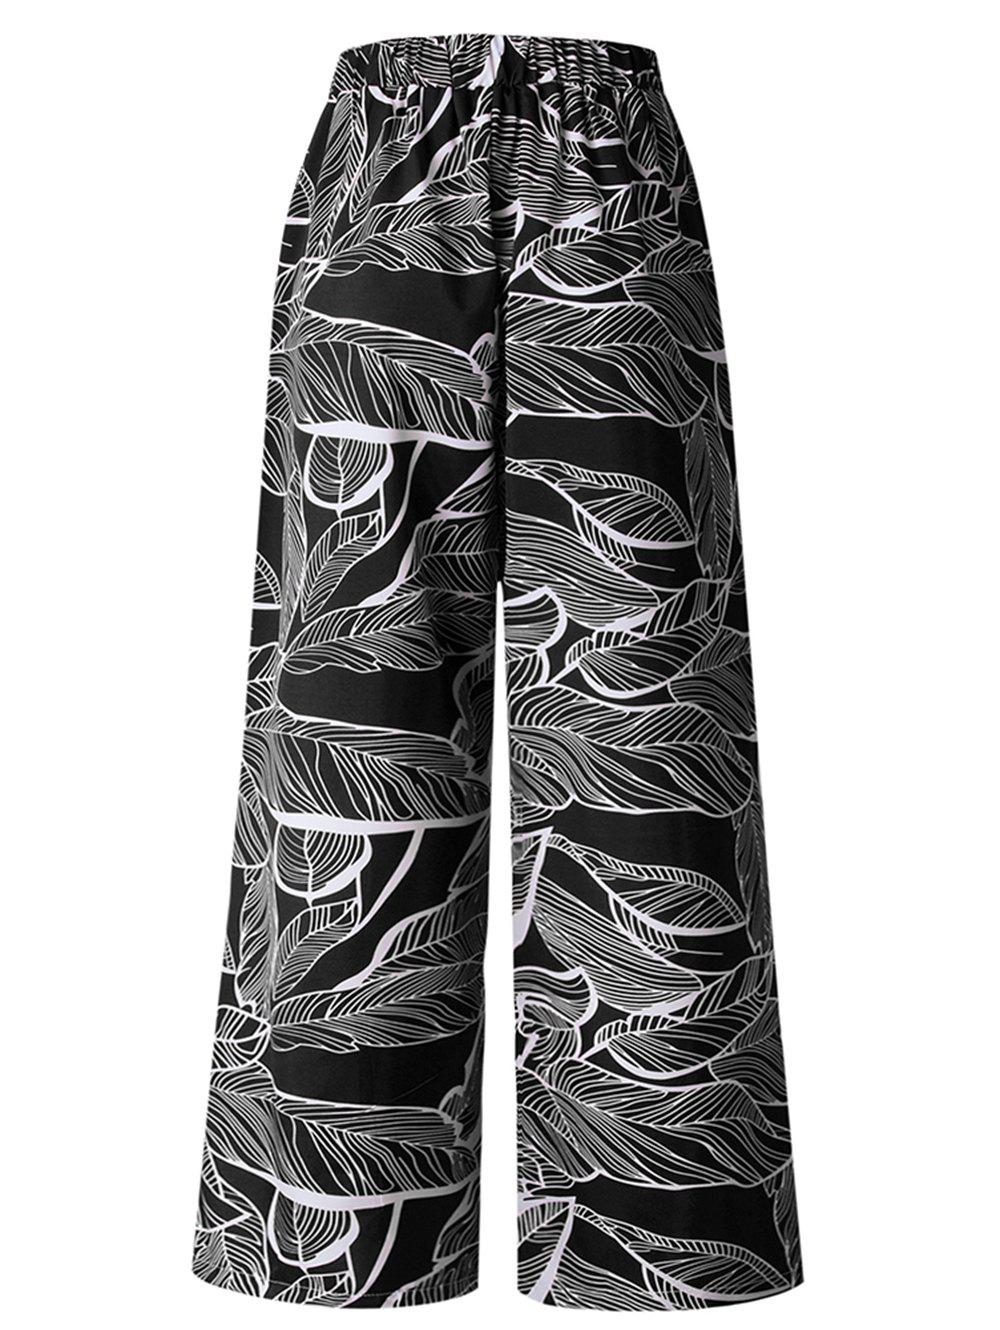 Chic Womens Casual Floral Print High Waist Wide Leg Long Palazzo Pants with Pockets